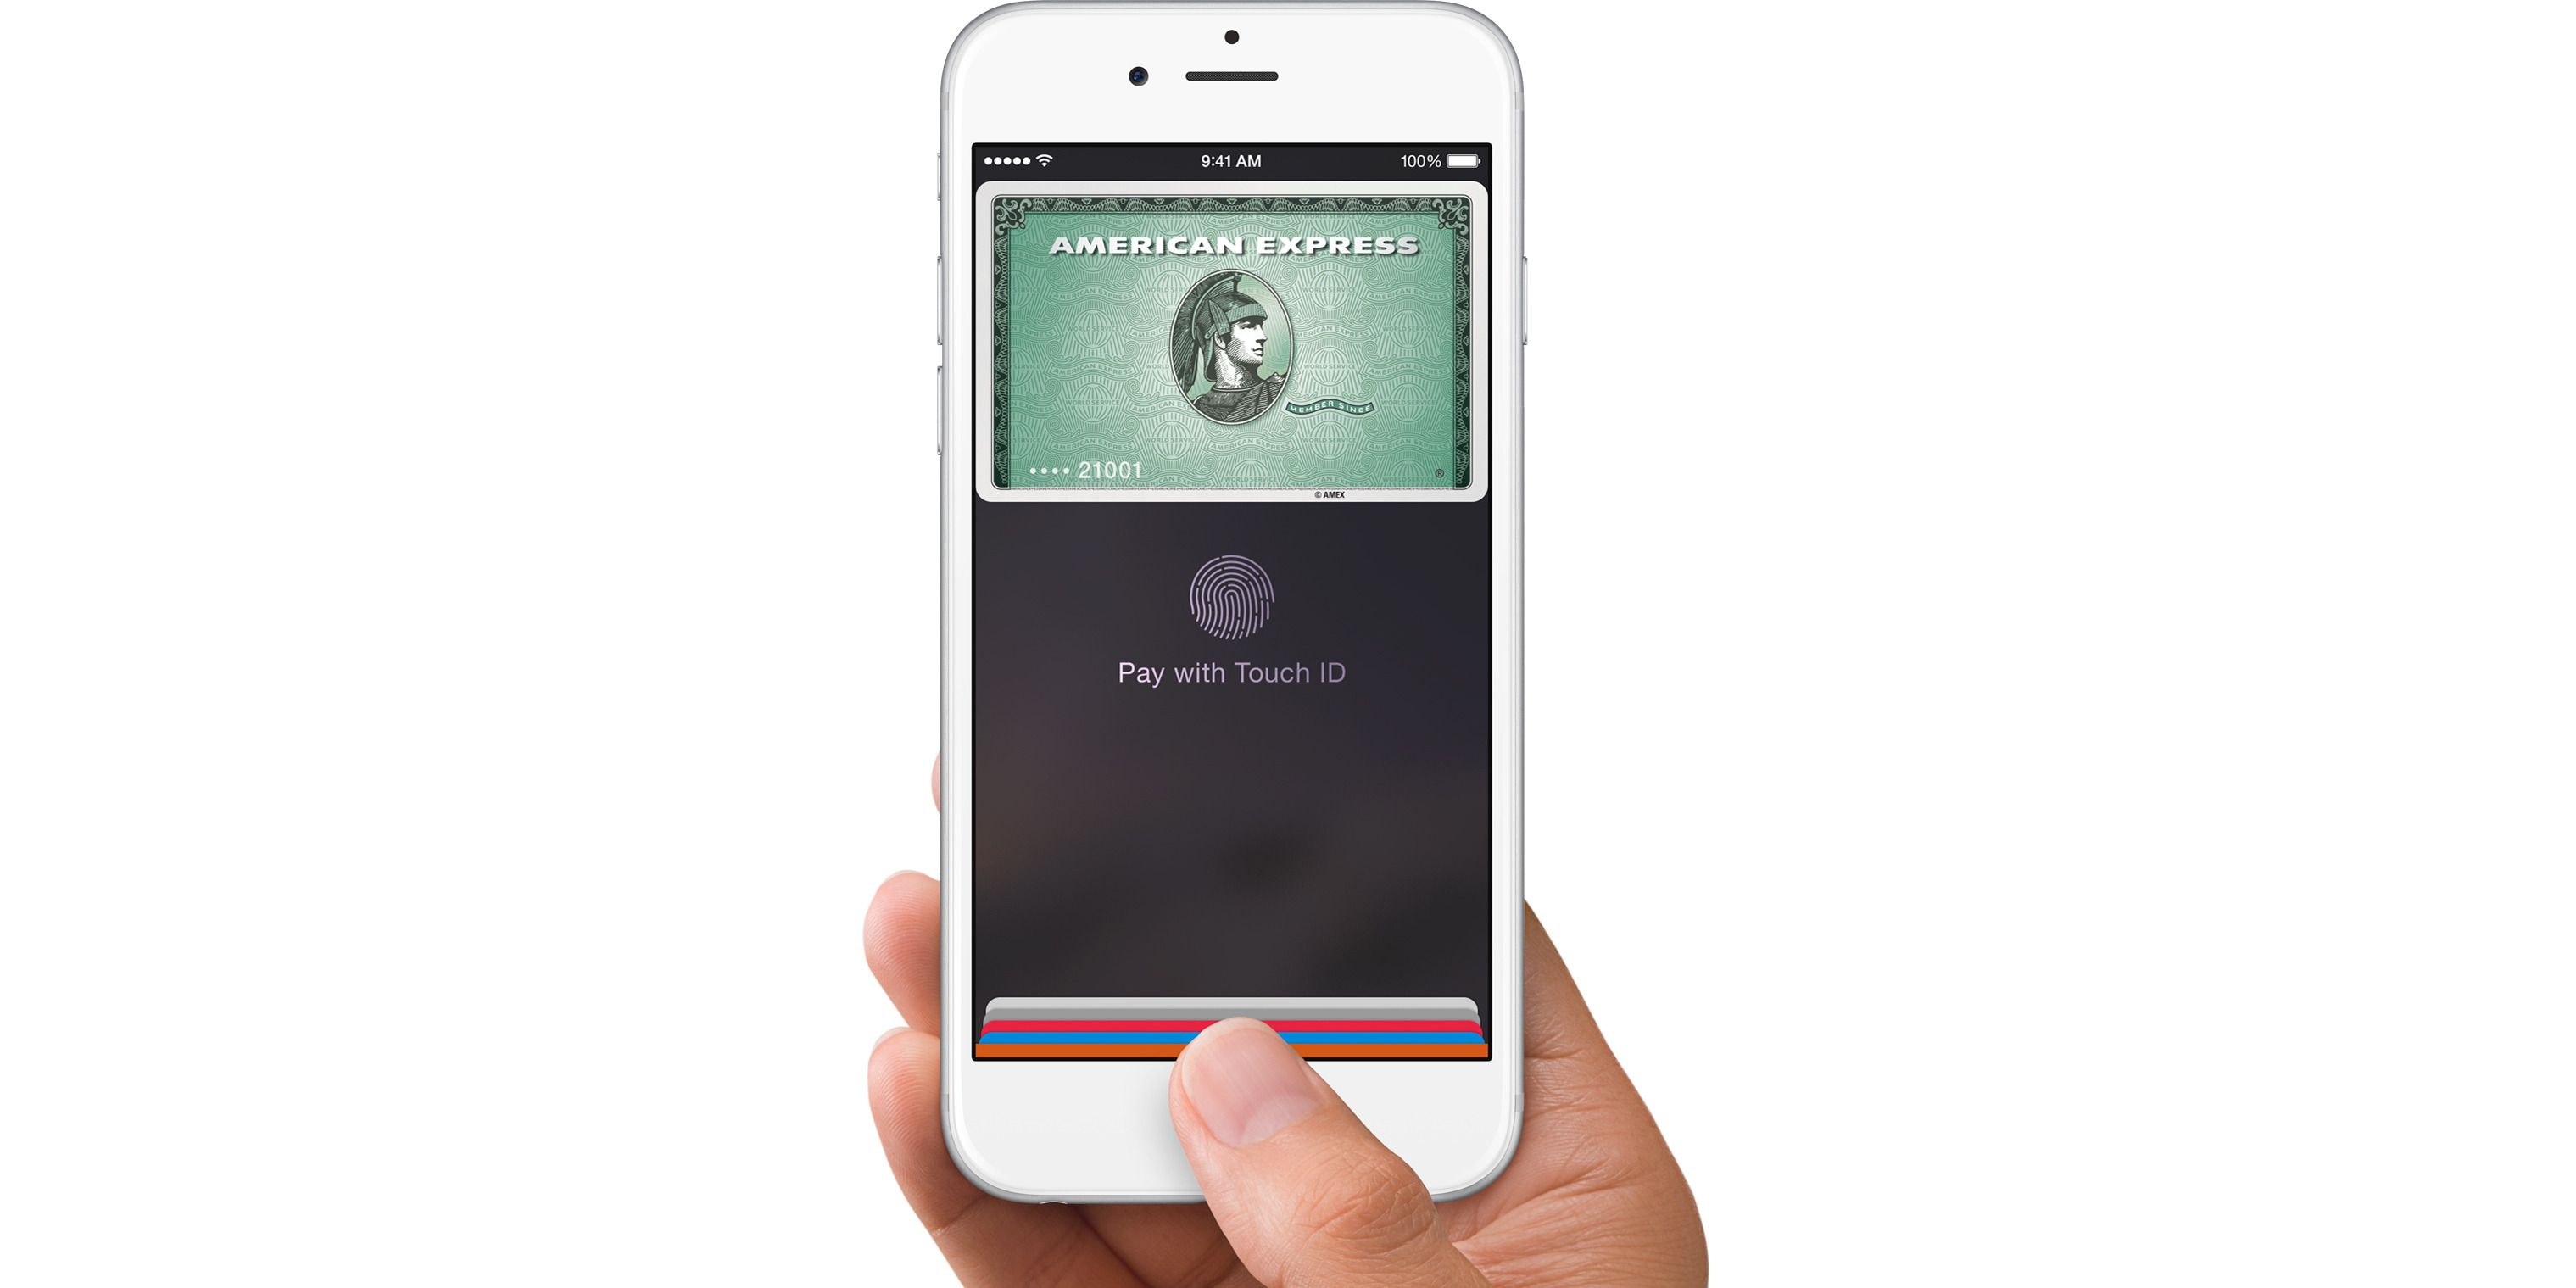 Apple Pay lanseres, men foreløpig bare i USA.Foto: Apple